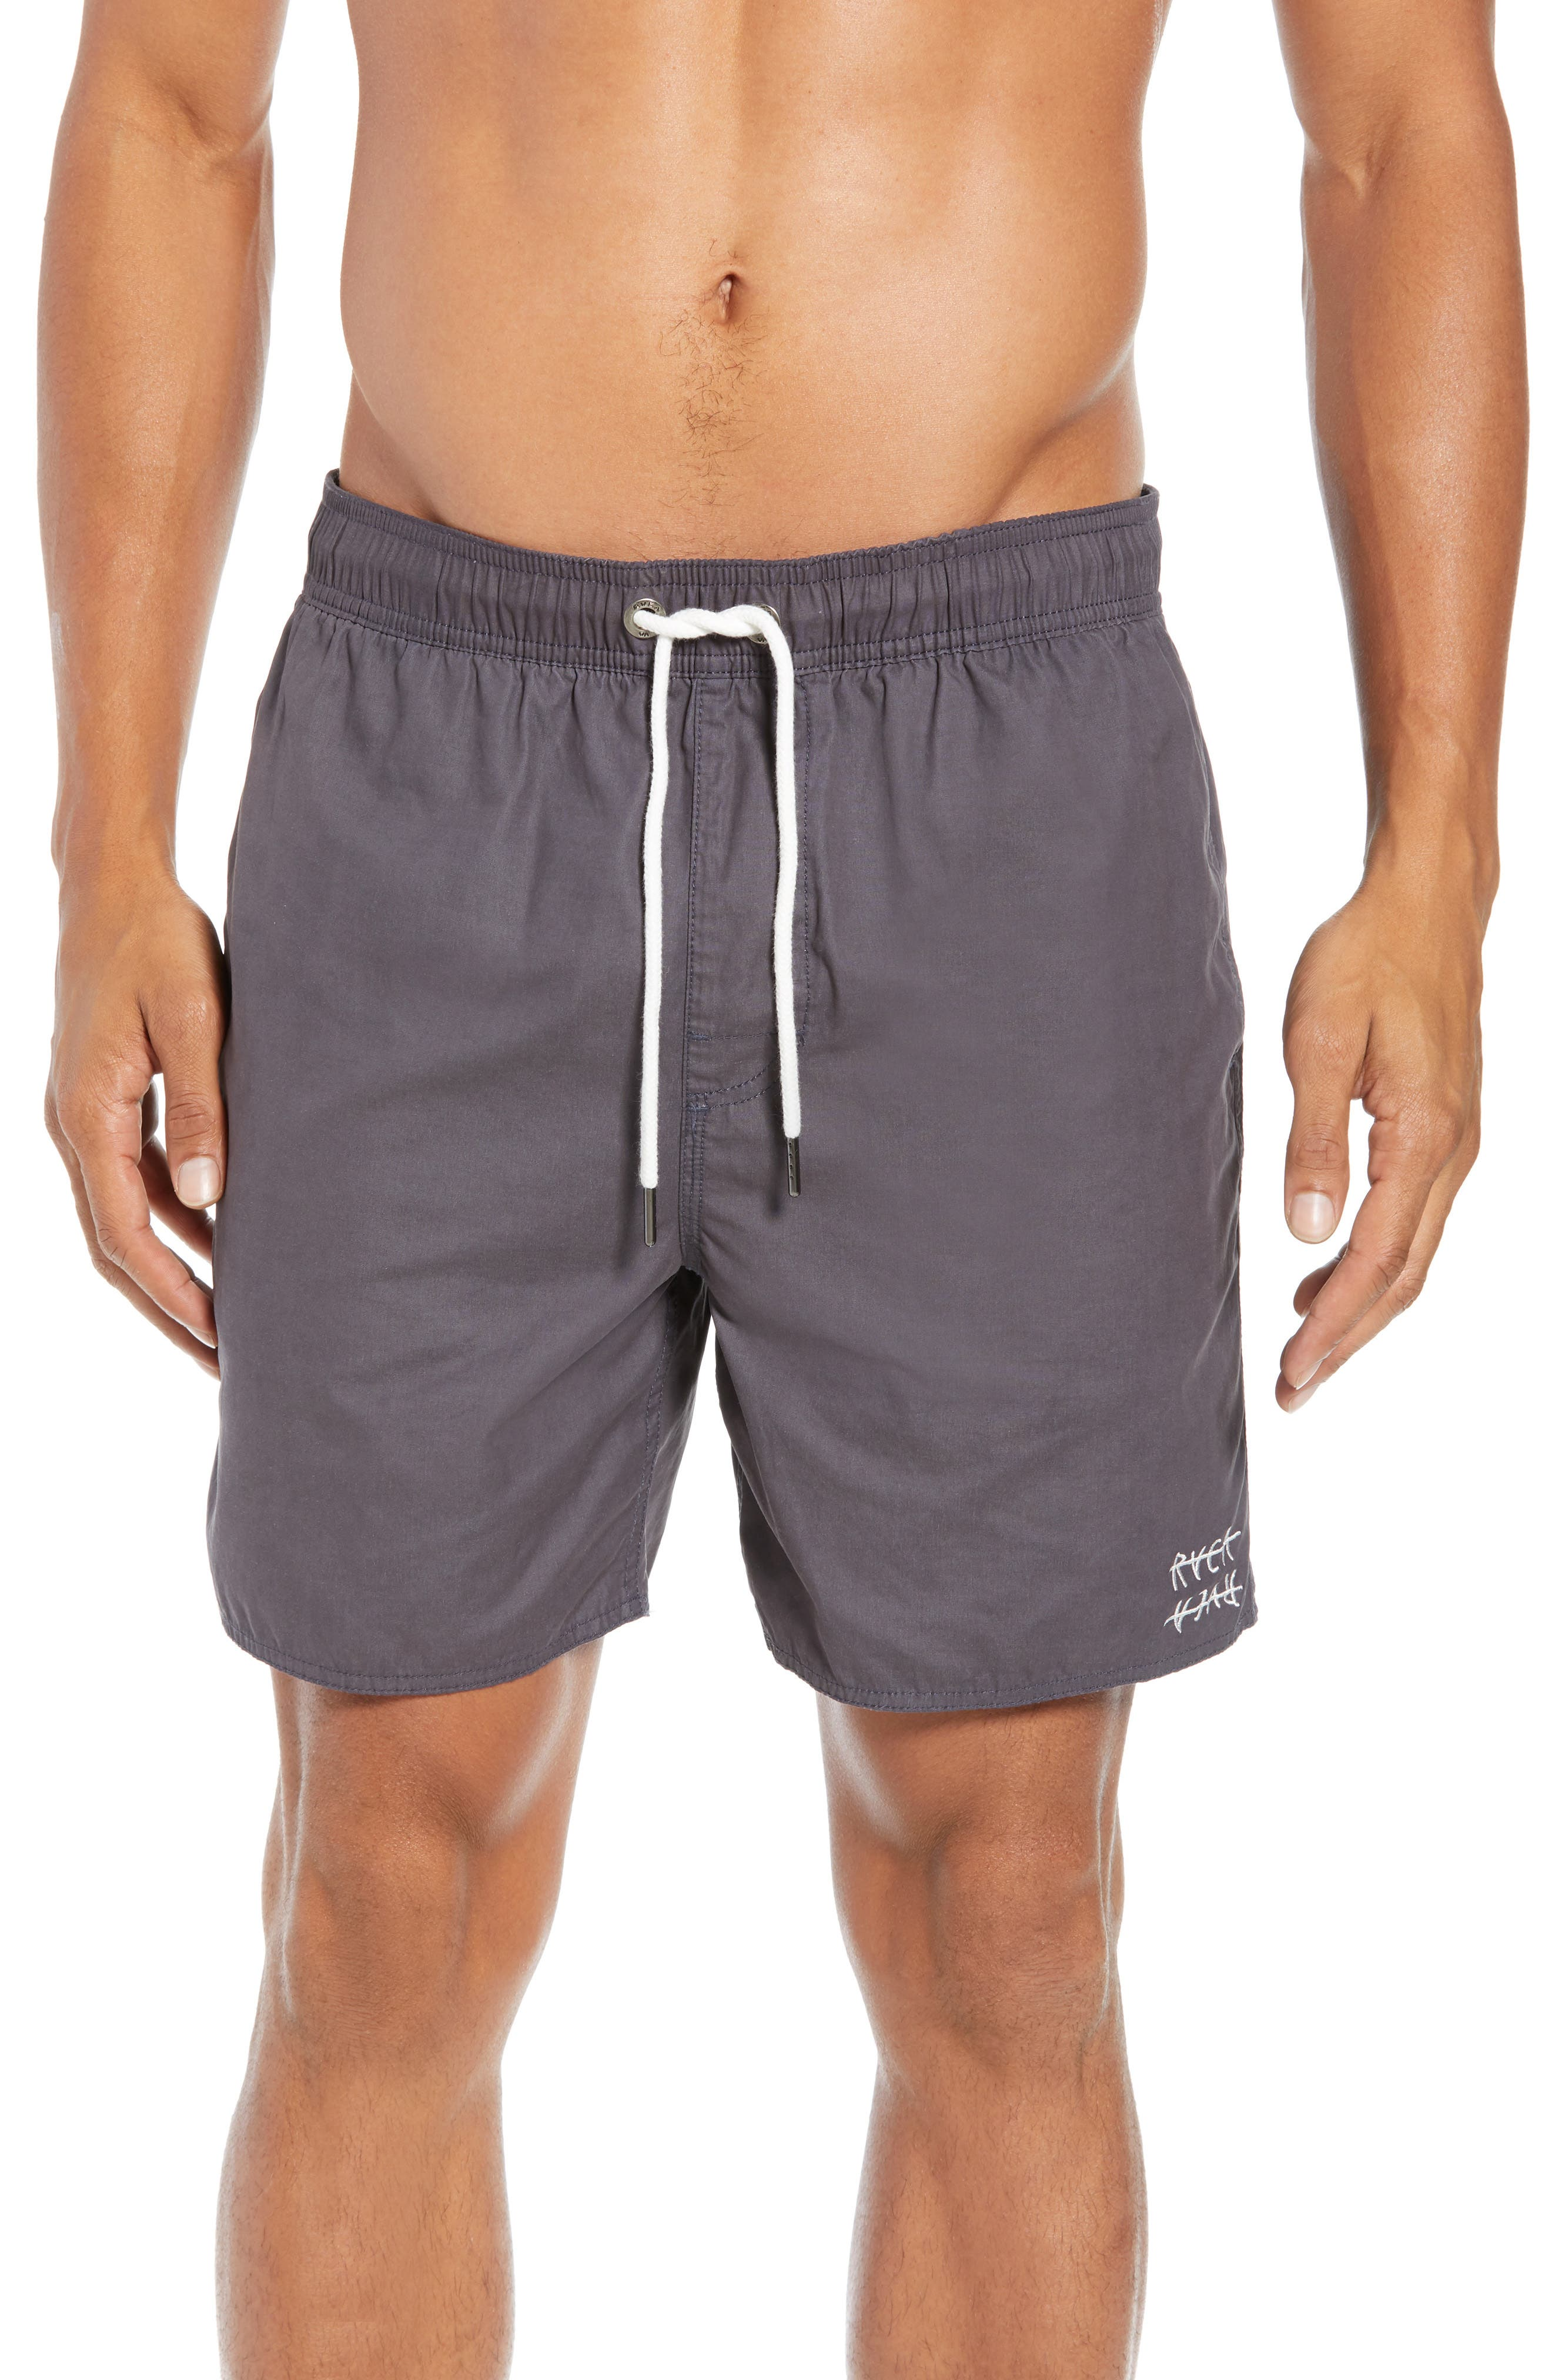 Horton Swim Trunks,                             Main thumbnail 1, color,                             OIL GREY